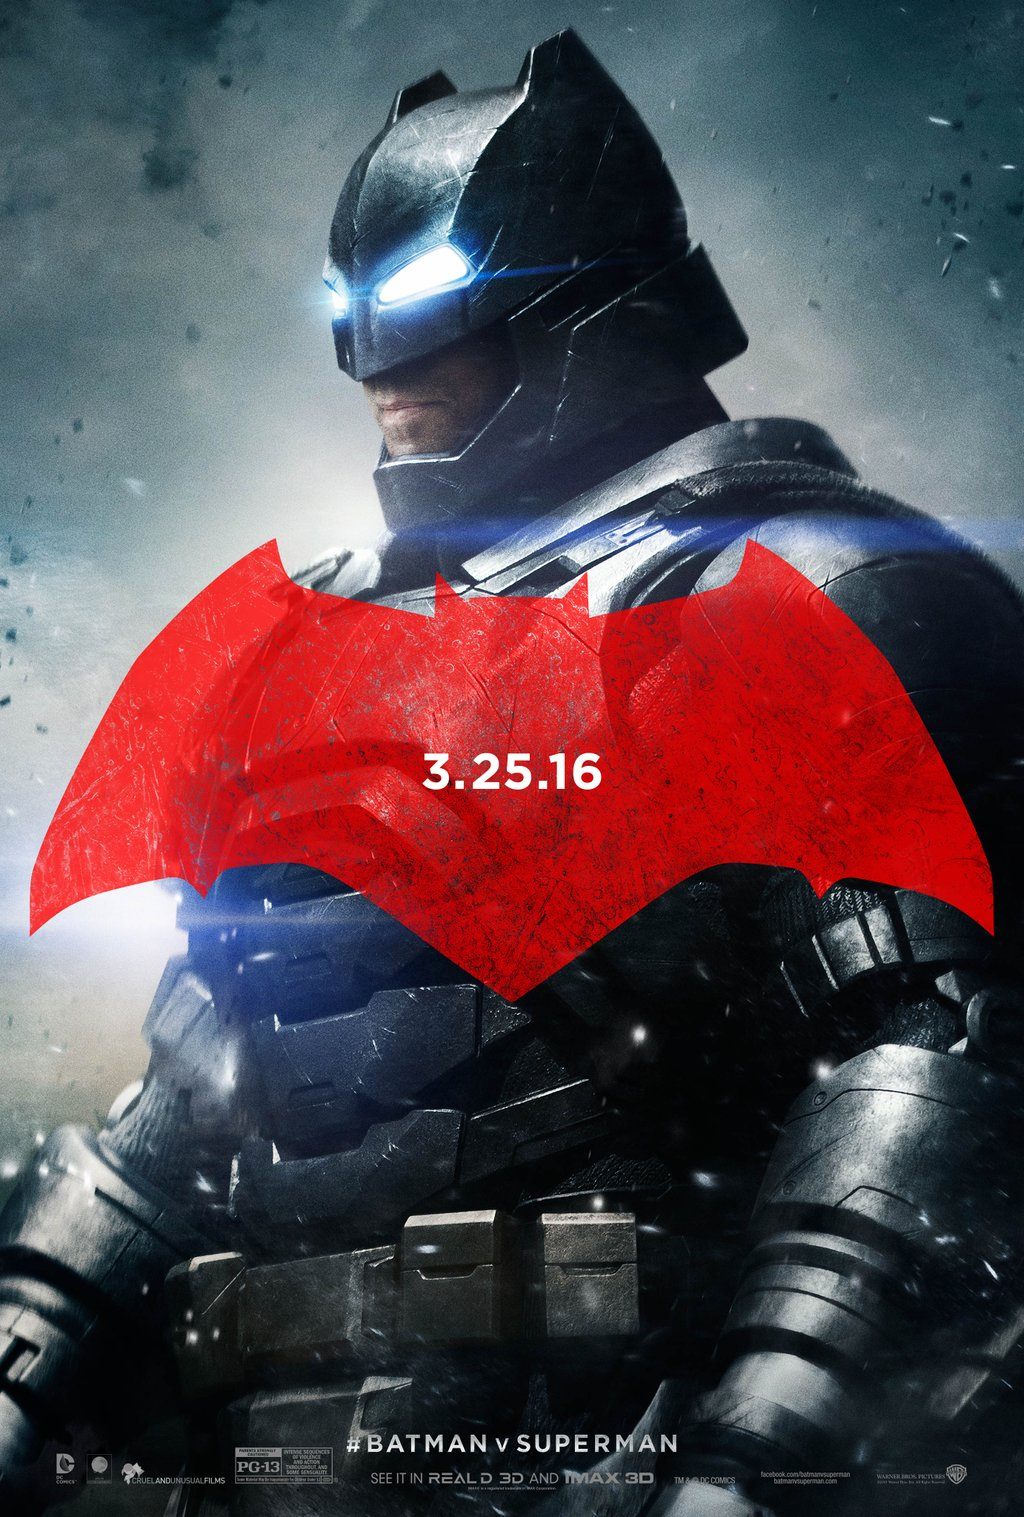 Batman v Superman: Dawn of Justice (2016) - Directed By: Zack SnyderStarring: Ben Affleck, Henry Cavill, Amy AdamsRated: PG-13 for Intense Sequences of Violence and Action Throughout, and Some SensualityTMM: 2 out of 5 StarsStrengths: Wonder Woman, Visually Engaging, IconicWeaknesses: Slow Pacing, Lack of Connection to Characters, Studio Concerns, Lack of Mystery, Henry Cavill